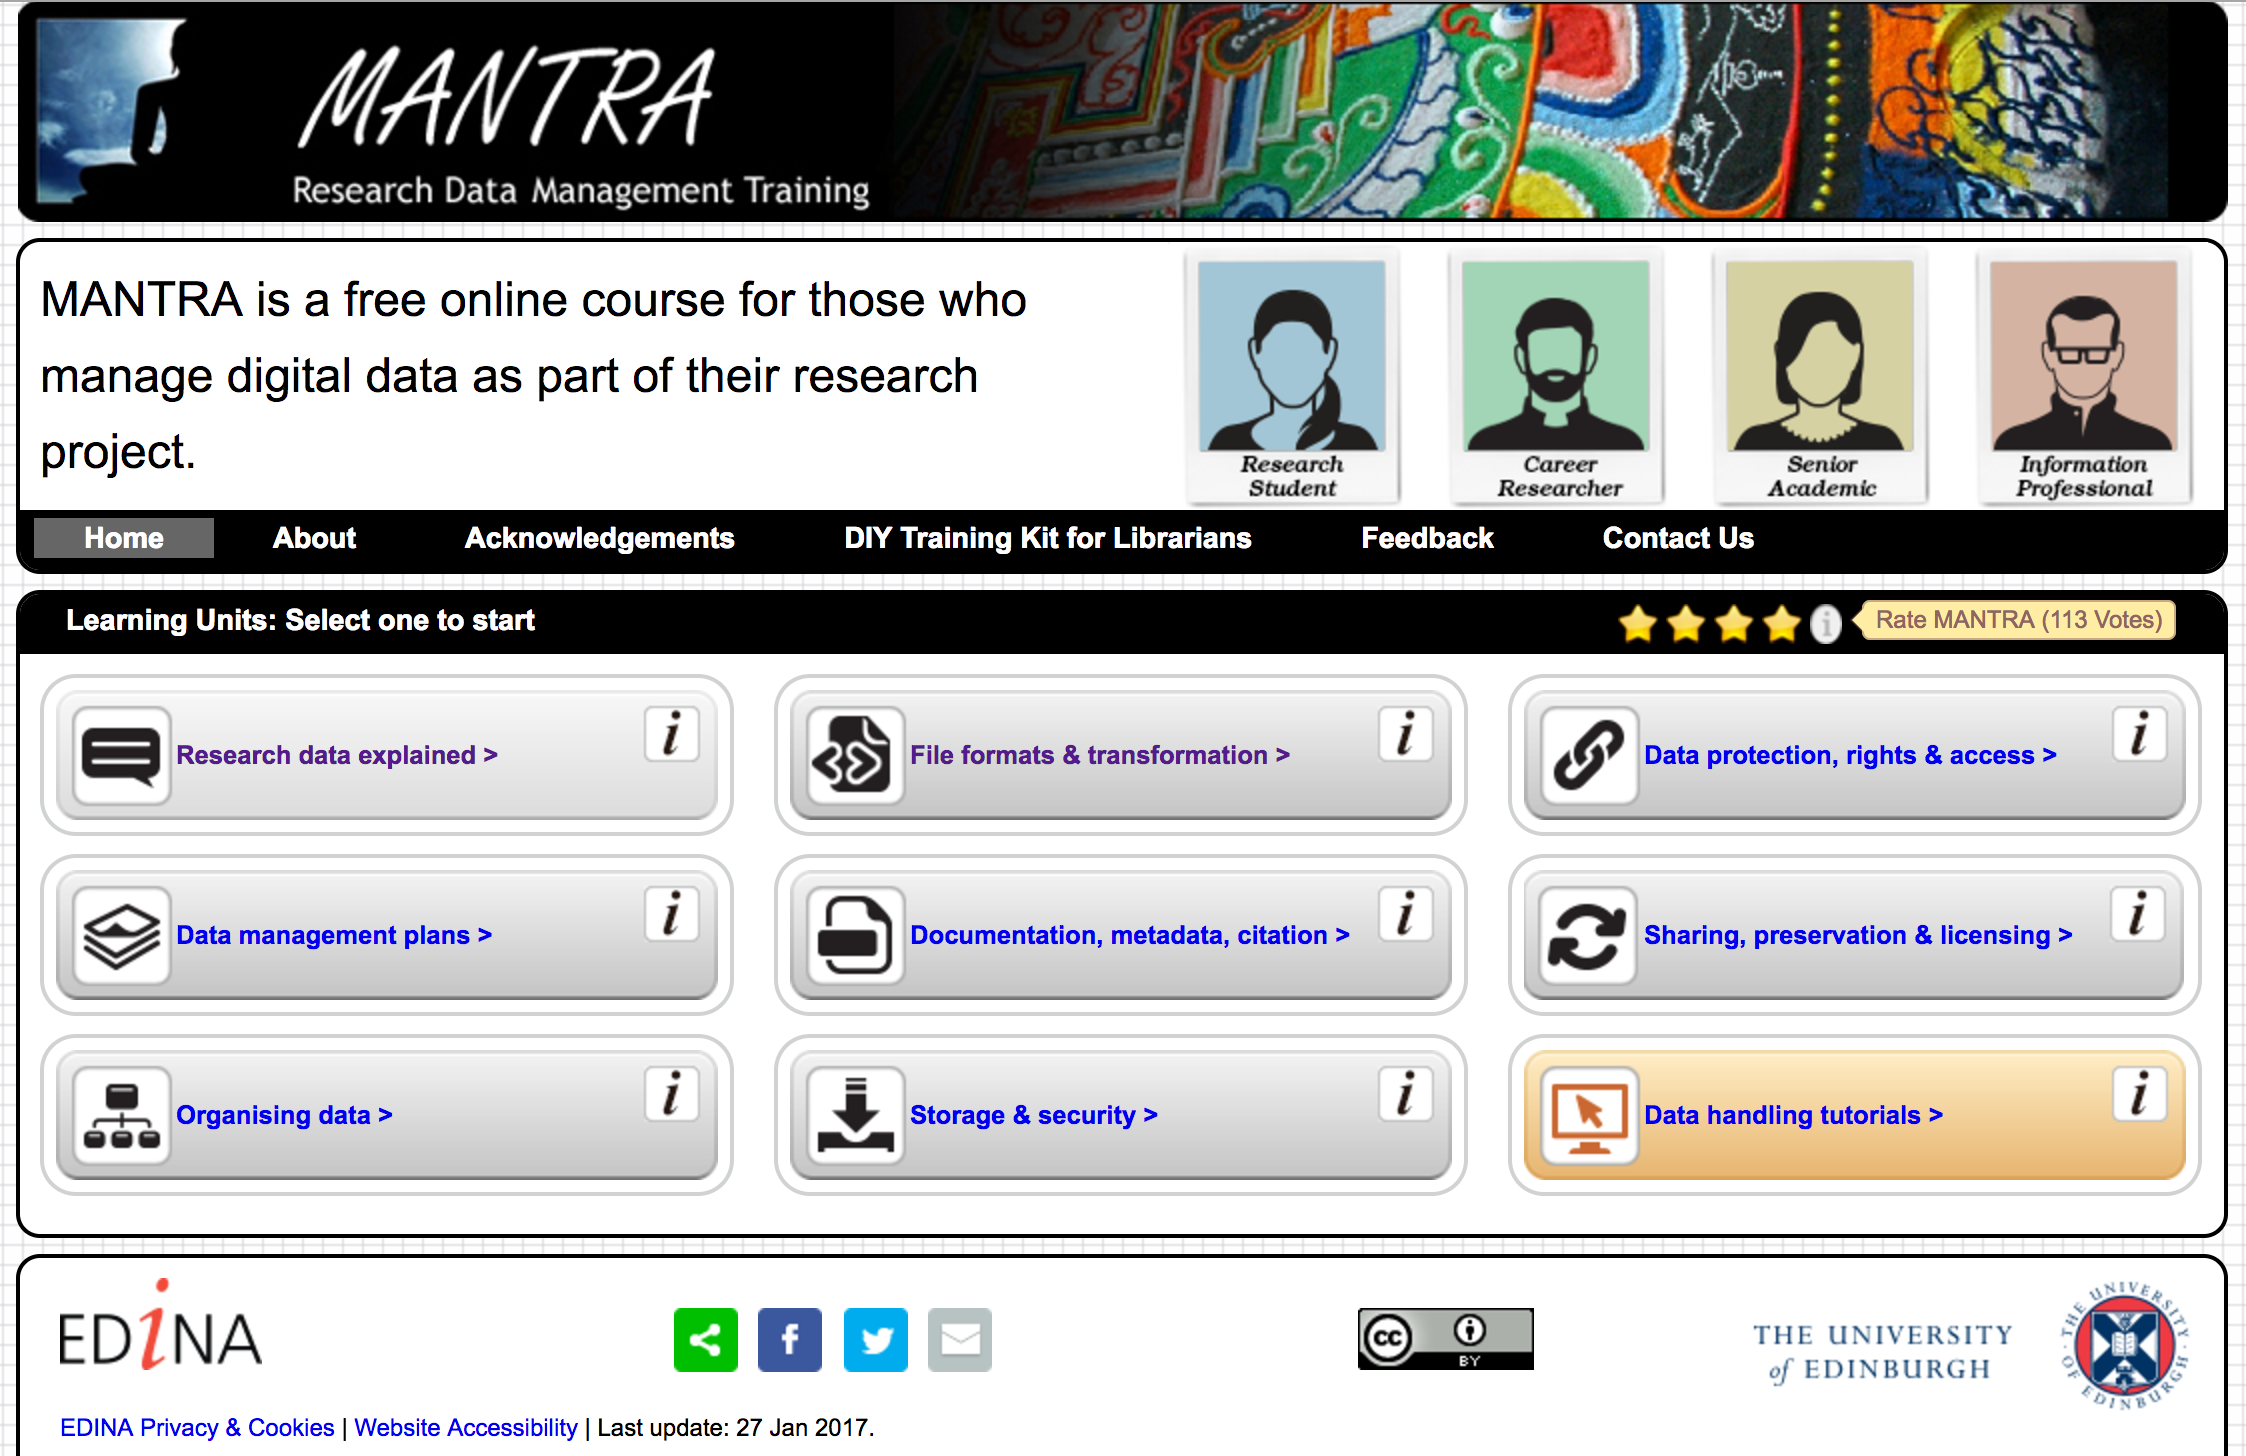 MANTRA Research Data Management Training